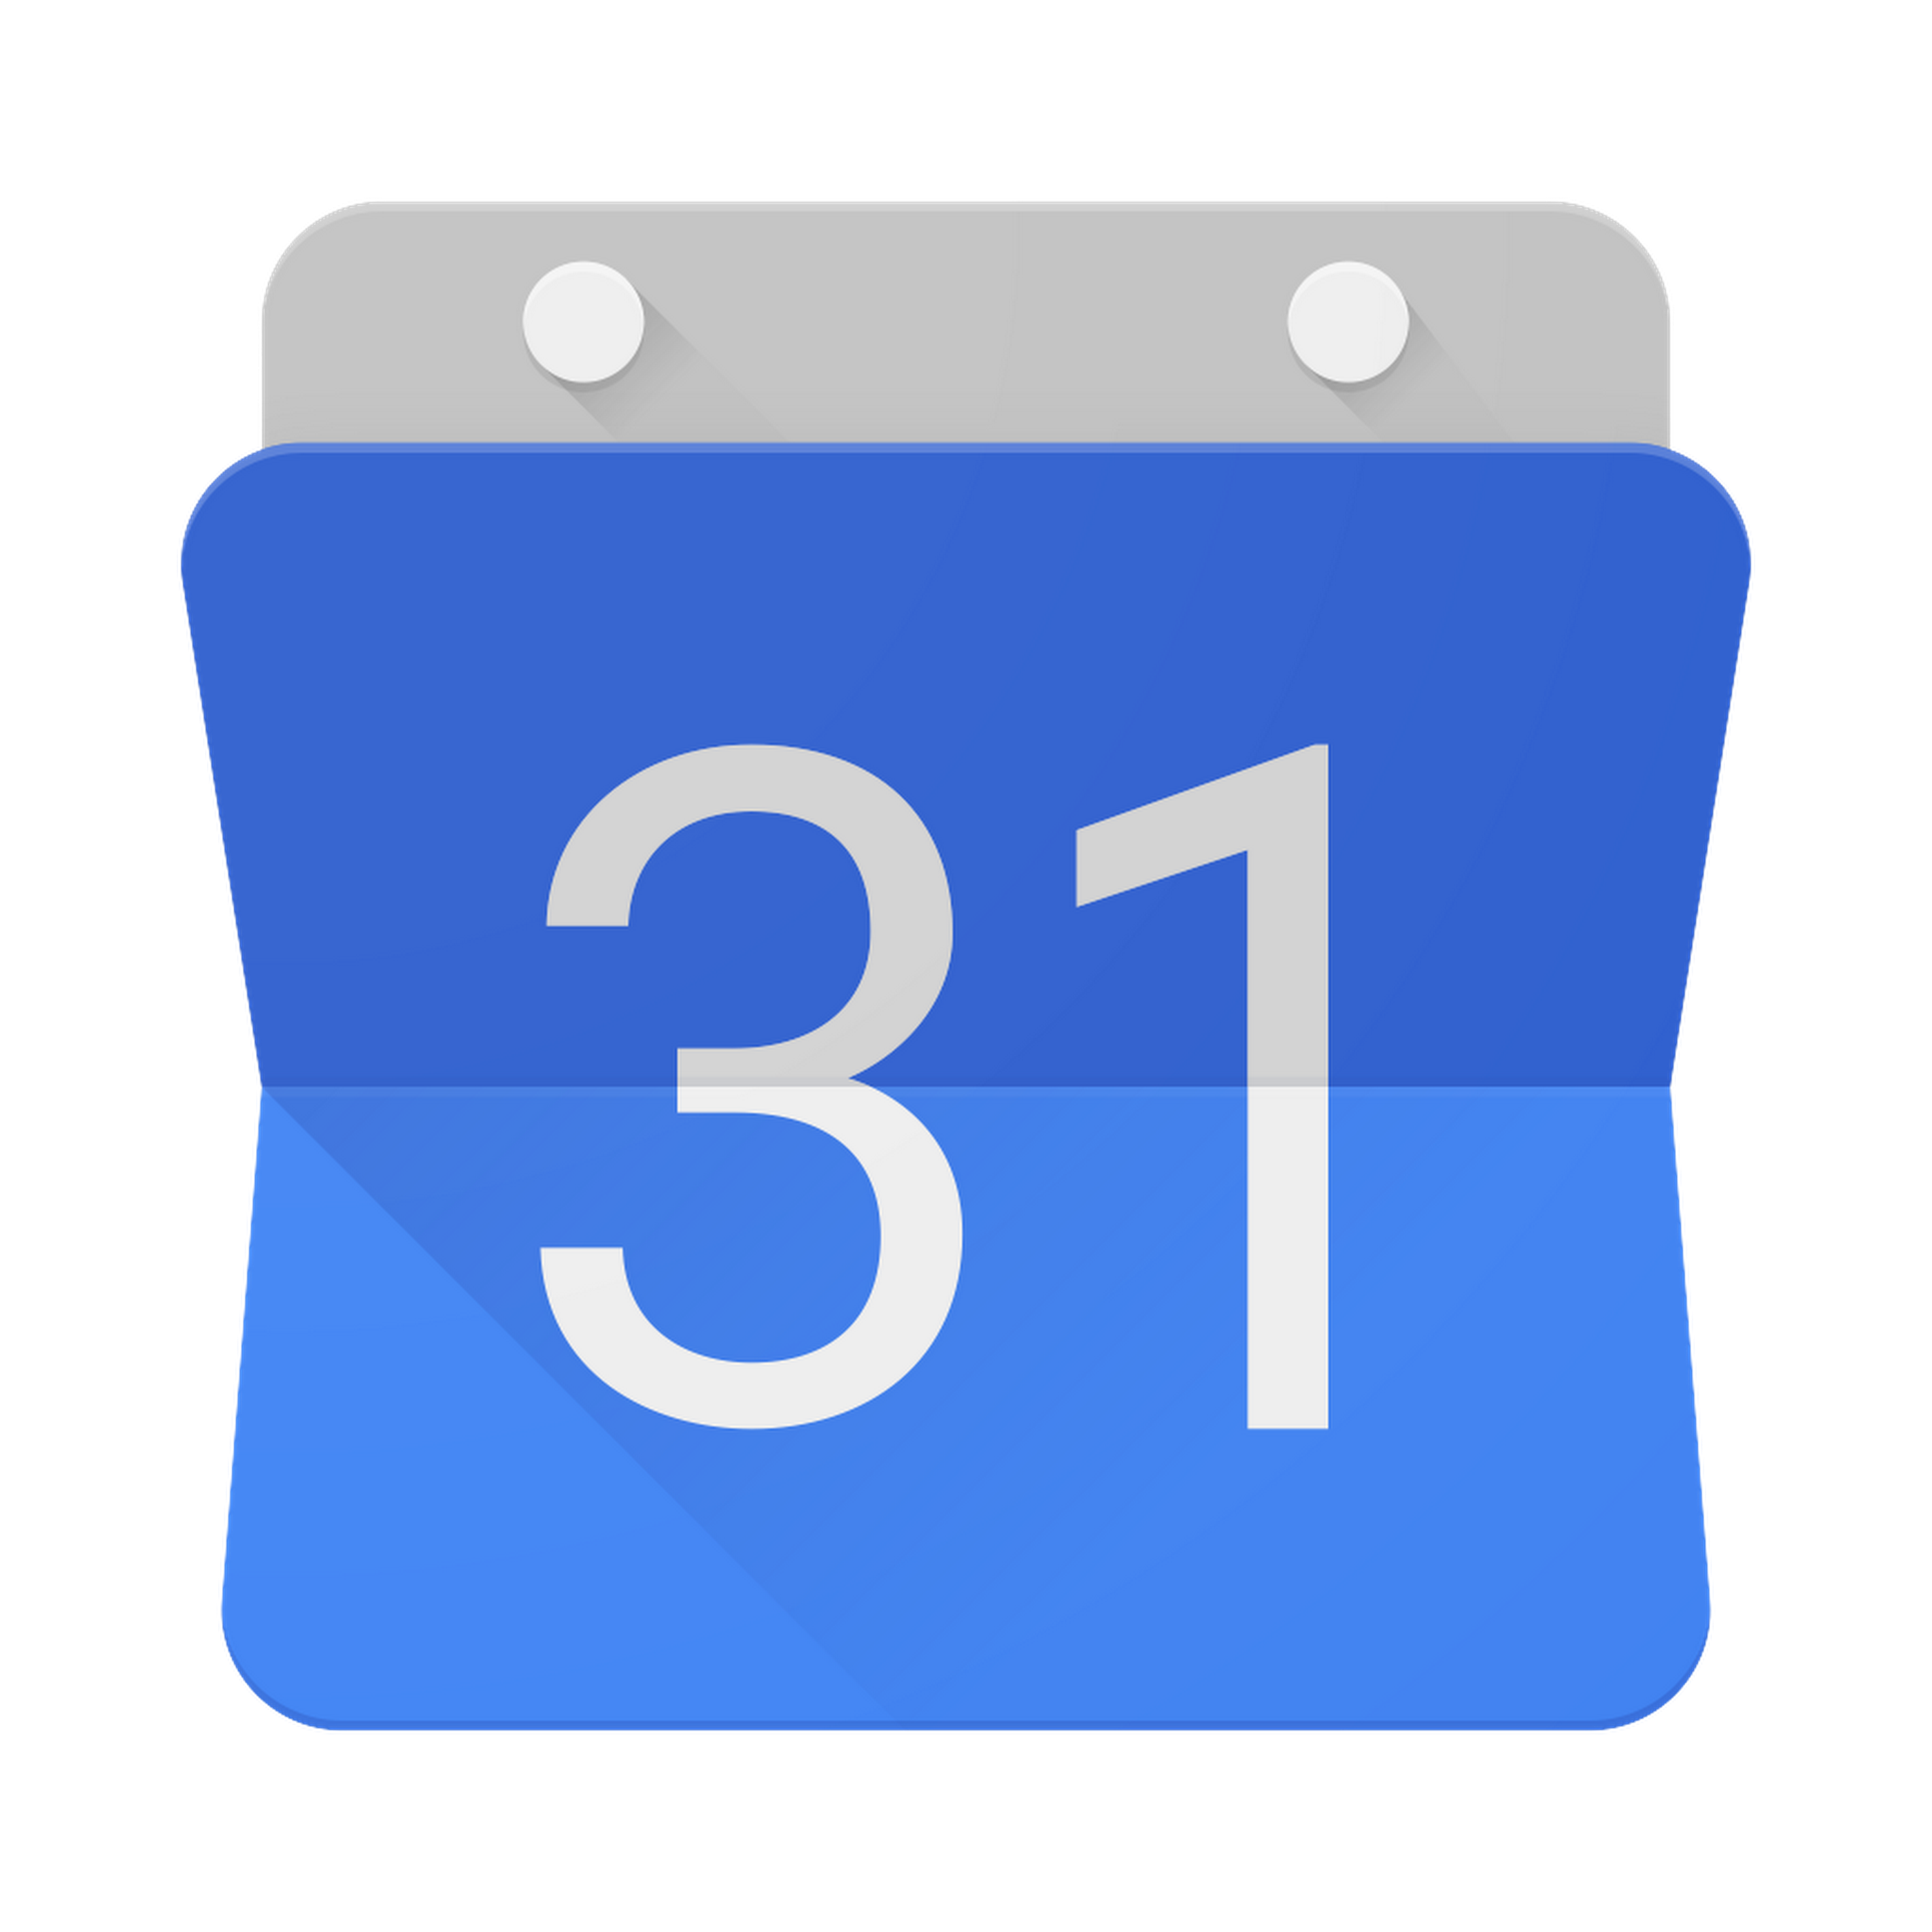 Suite Calendar Google Computer Icons Free Download Image PNG Image